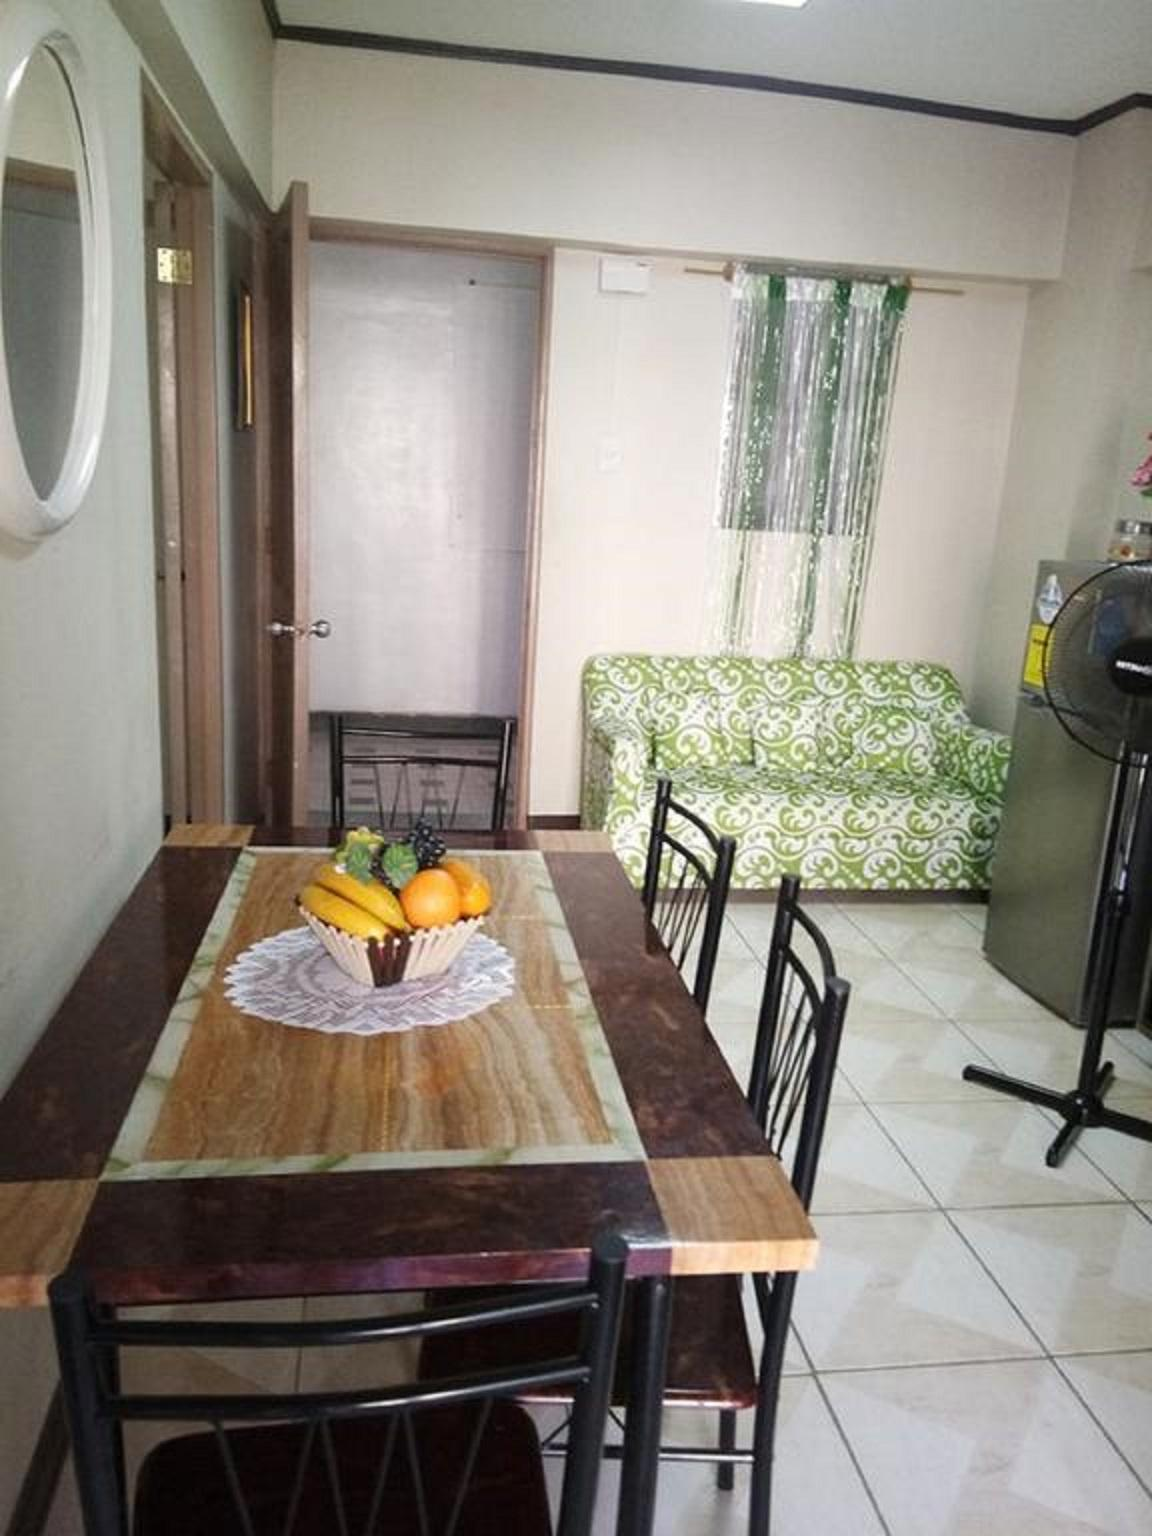 2BR Apartment Near The Airport By JB CONDO RENTALS